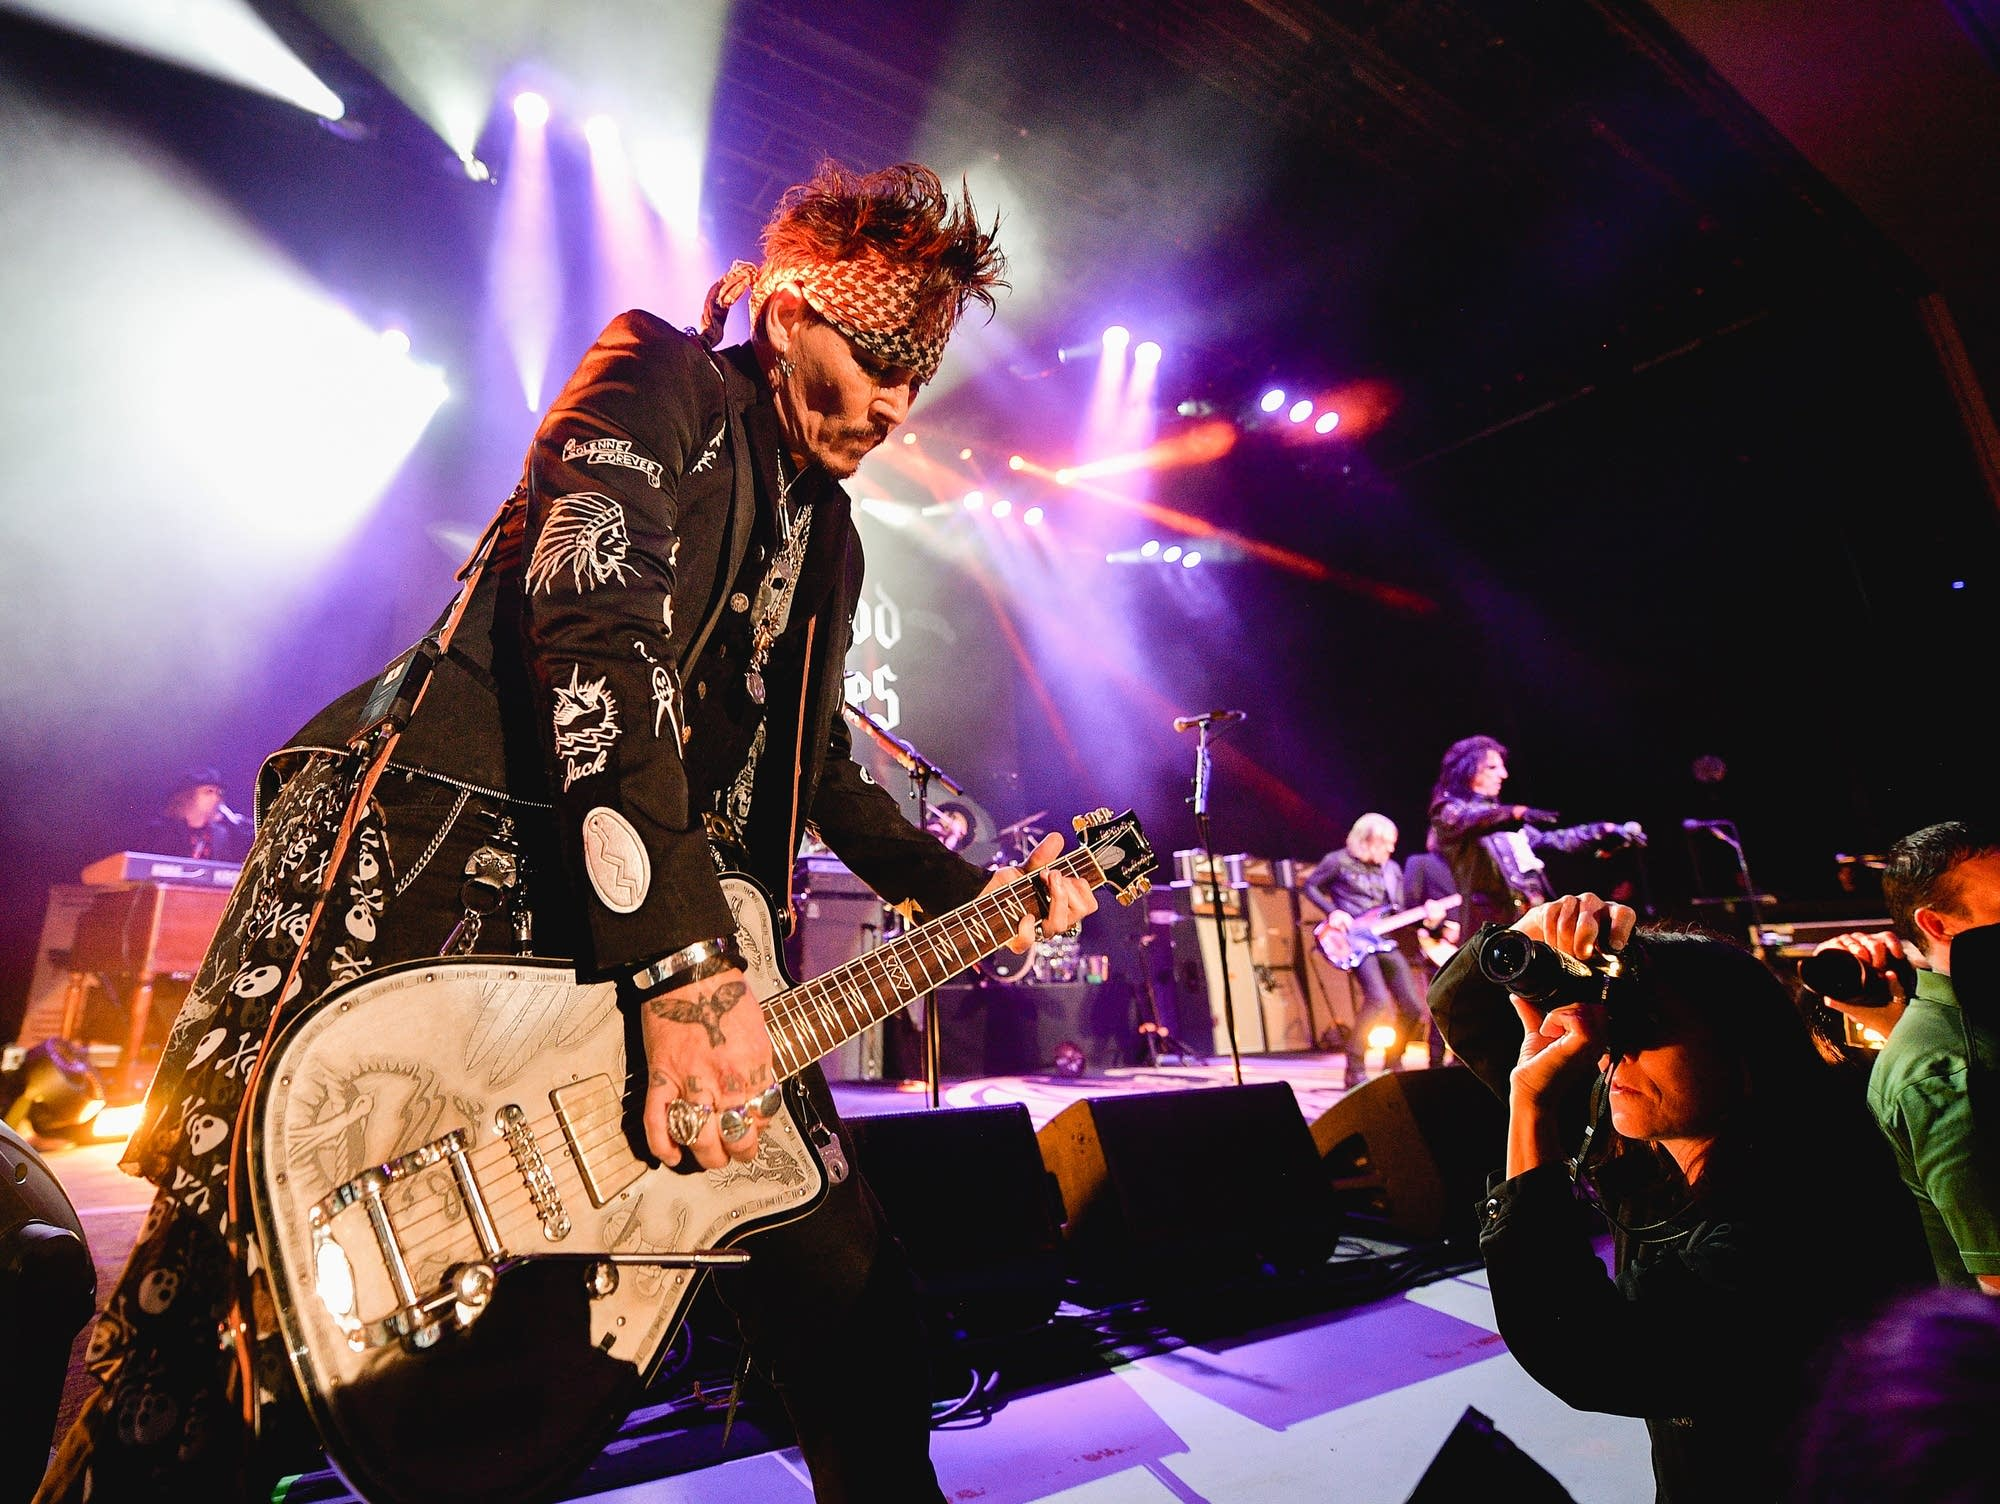 Hollywood Vampires performing at The Greek Theater in LA